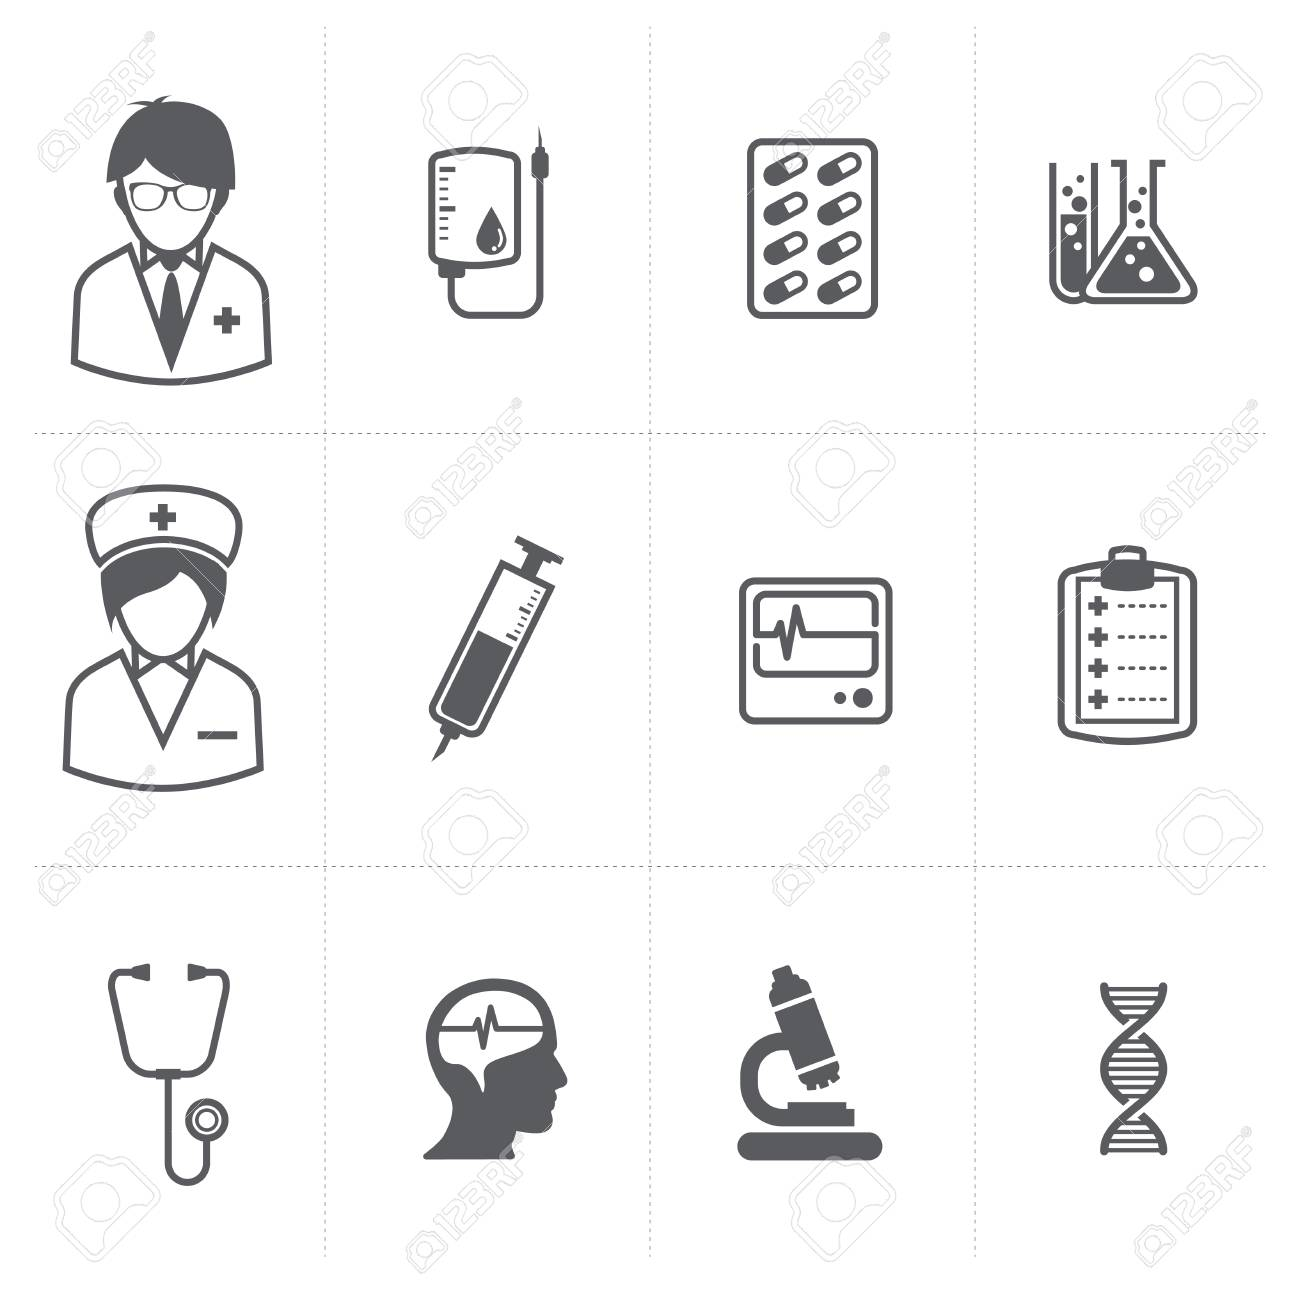 medical icons set Stock Vector - 22816981